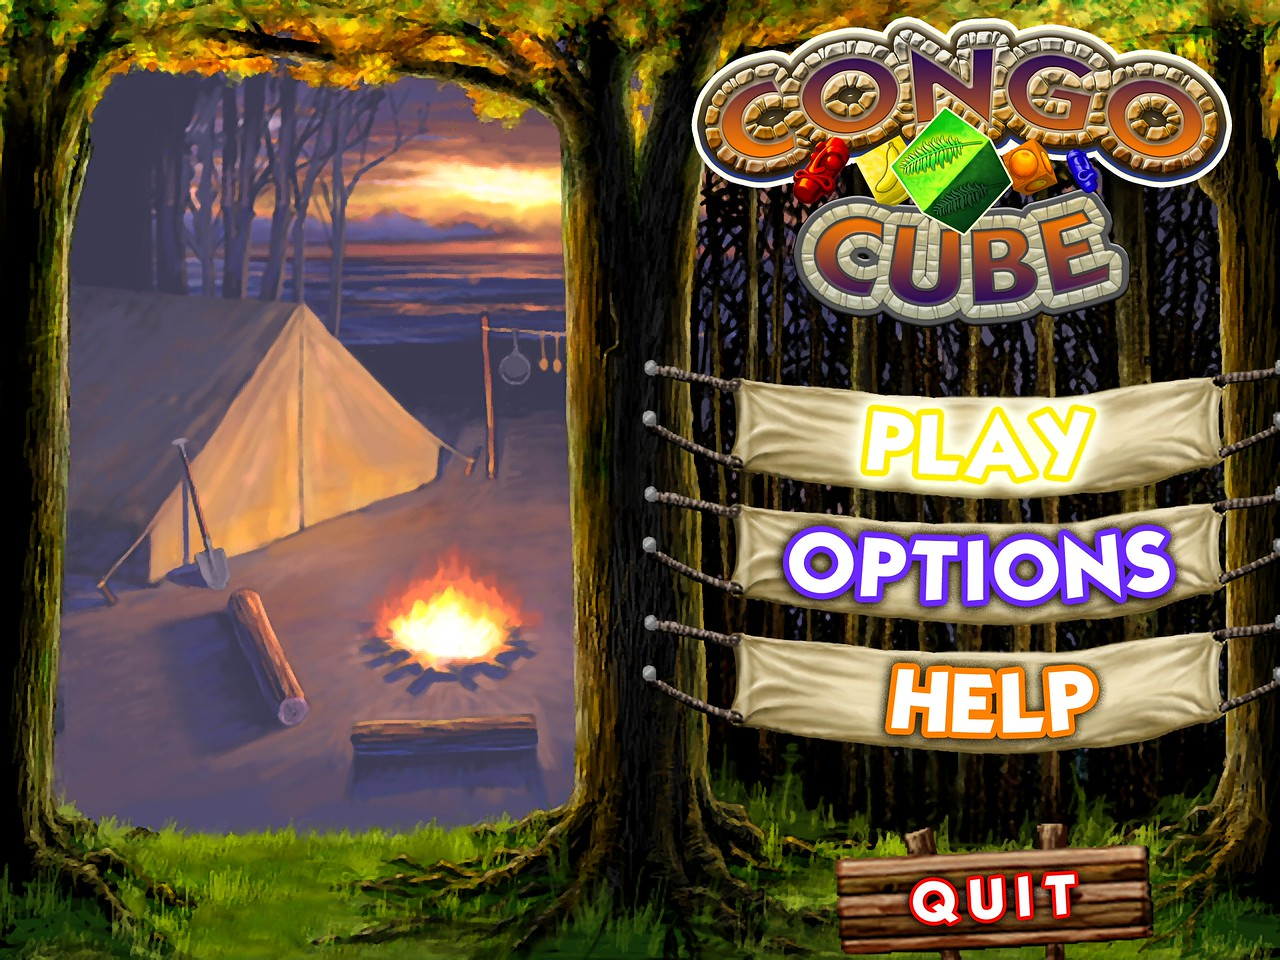 Here's a hi-resolution image of the Congo Cube main menu with its happy little campfire nearby.<br /> <br /> I really love the feel of the game with the Congo location graphics and the music....ahhhh....soothing.  <br /> <br /> Until you play the game, that is.